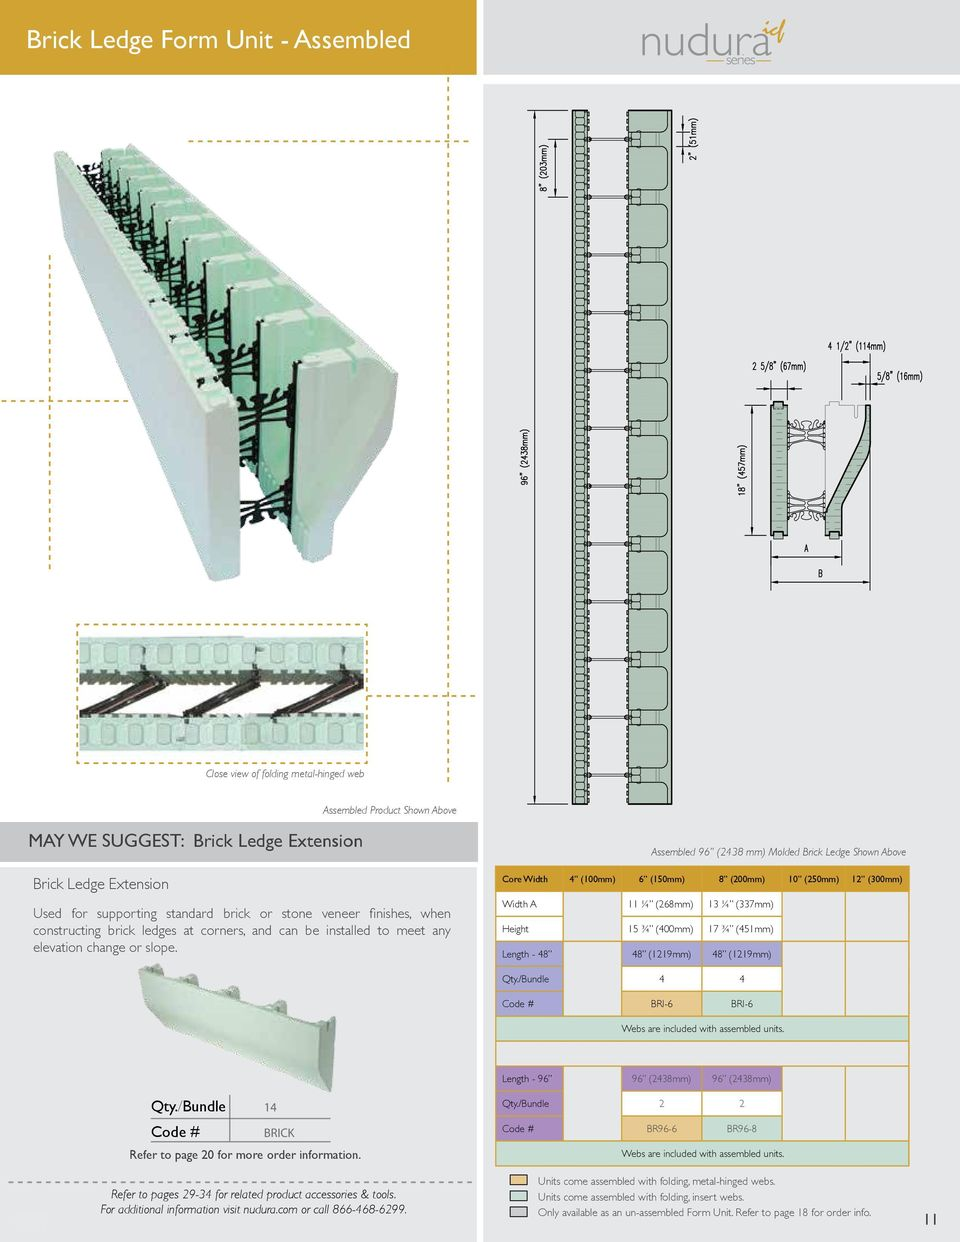 Assembled (2438 mm) Molded Brick Ledge Shown Above Width A 11 ¼ (268mm) 13 ¼ (337mm) Height 15 ¾ (400mm) 17 ¾ (451mm) Length - Qty./Bundle 4 4 BRI-6 BRI-6 Webs are included with assembled units.